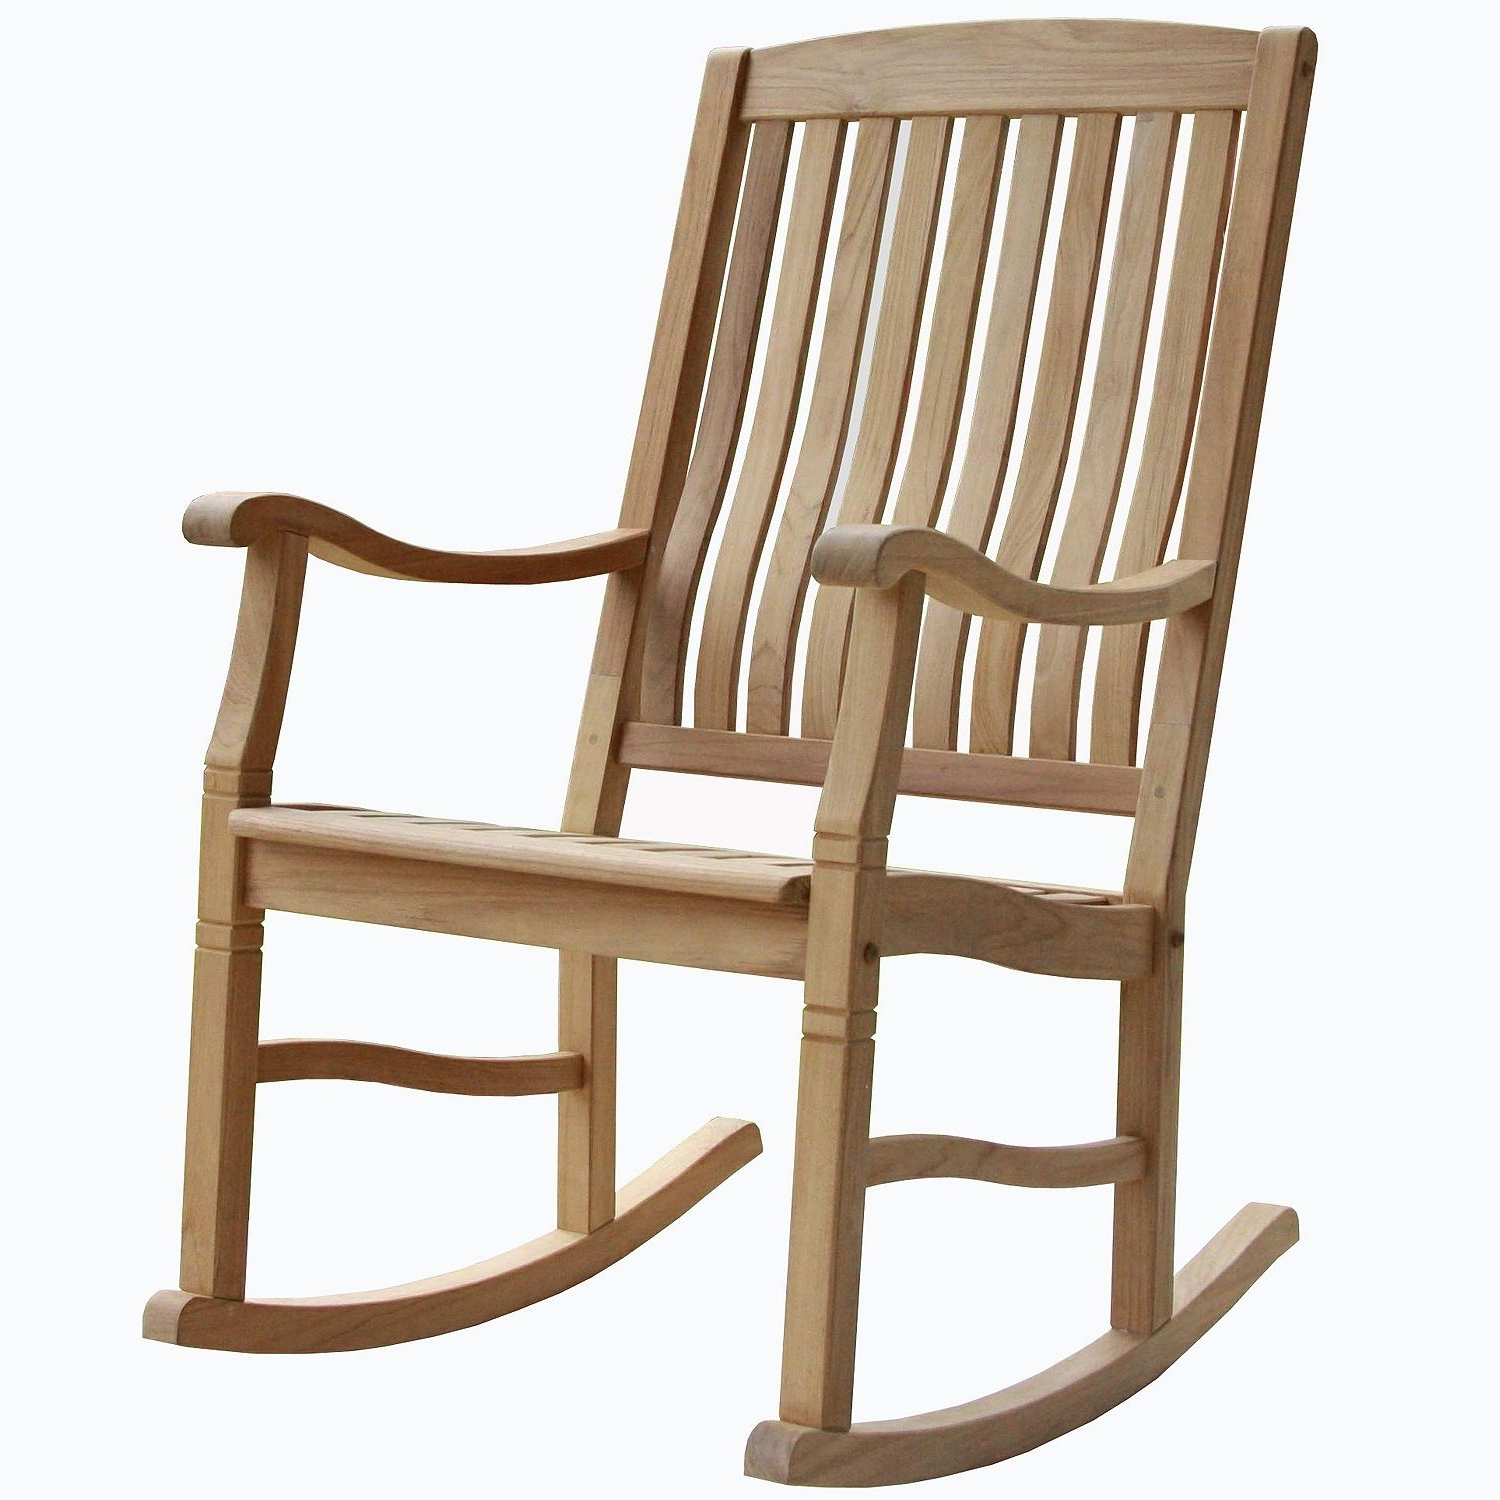 Favorite Teak Patio Rocking Chairs Within Teak Rocking Chair (2 Pack)  (View 6 of 15)